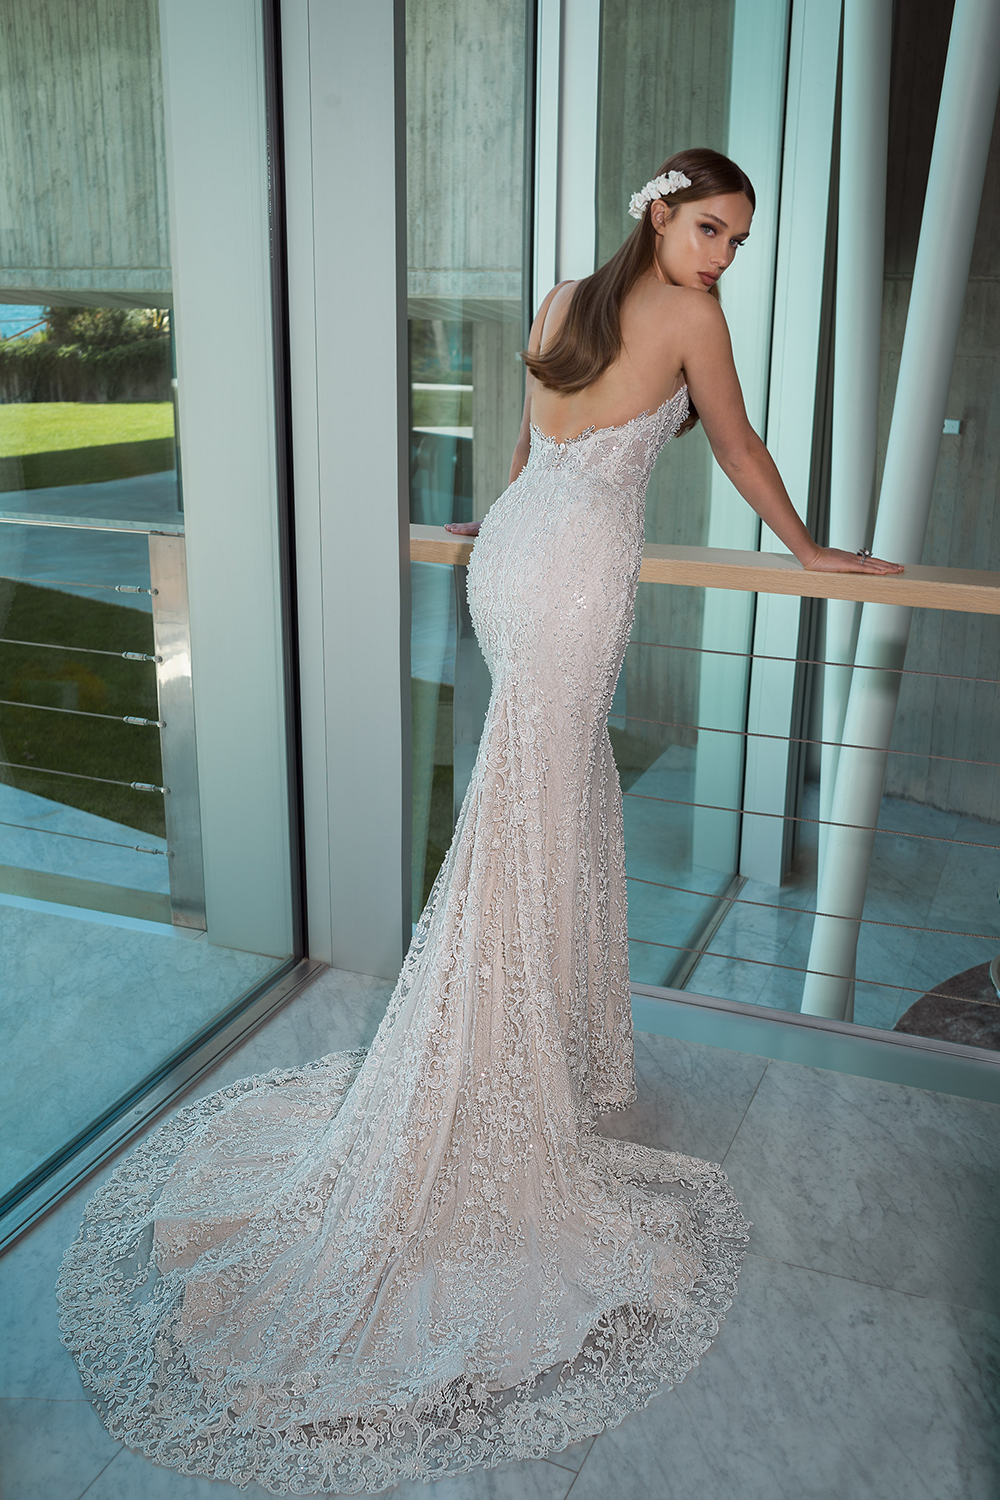 MondoBridal - Crystal Design - The Icon 2019